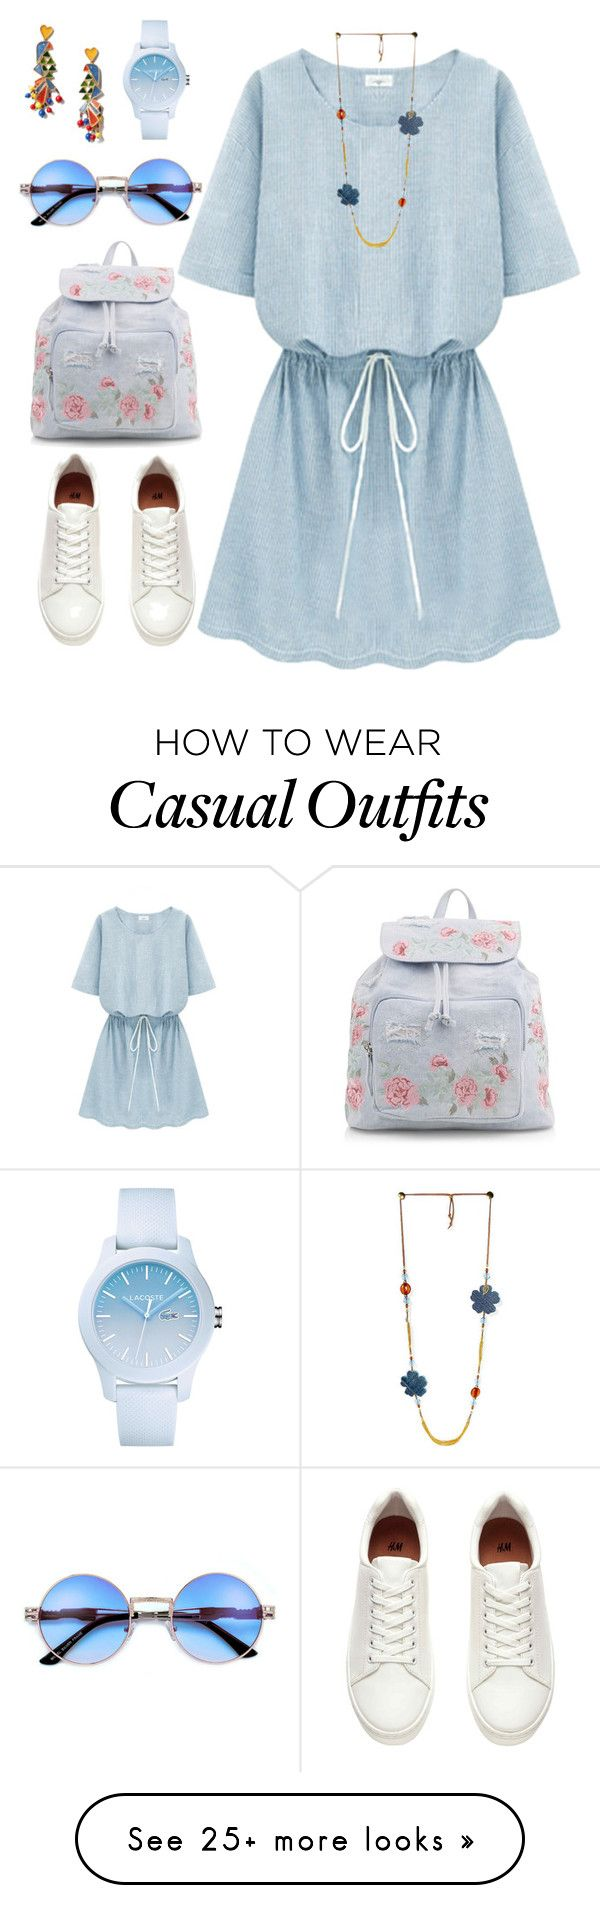 """Untitled #282"" by siberiagirl on Polyvore featuring Tory Burch, New Look and Lacoste"